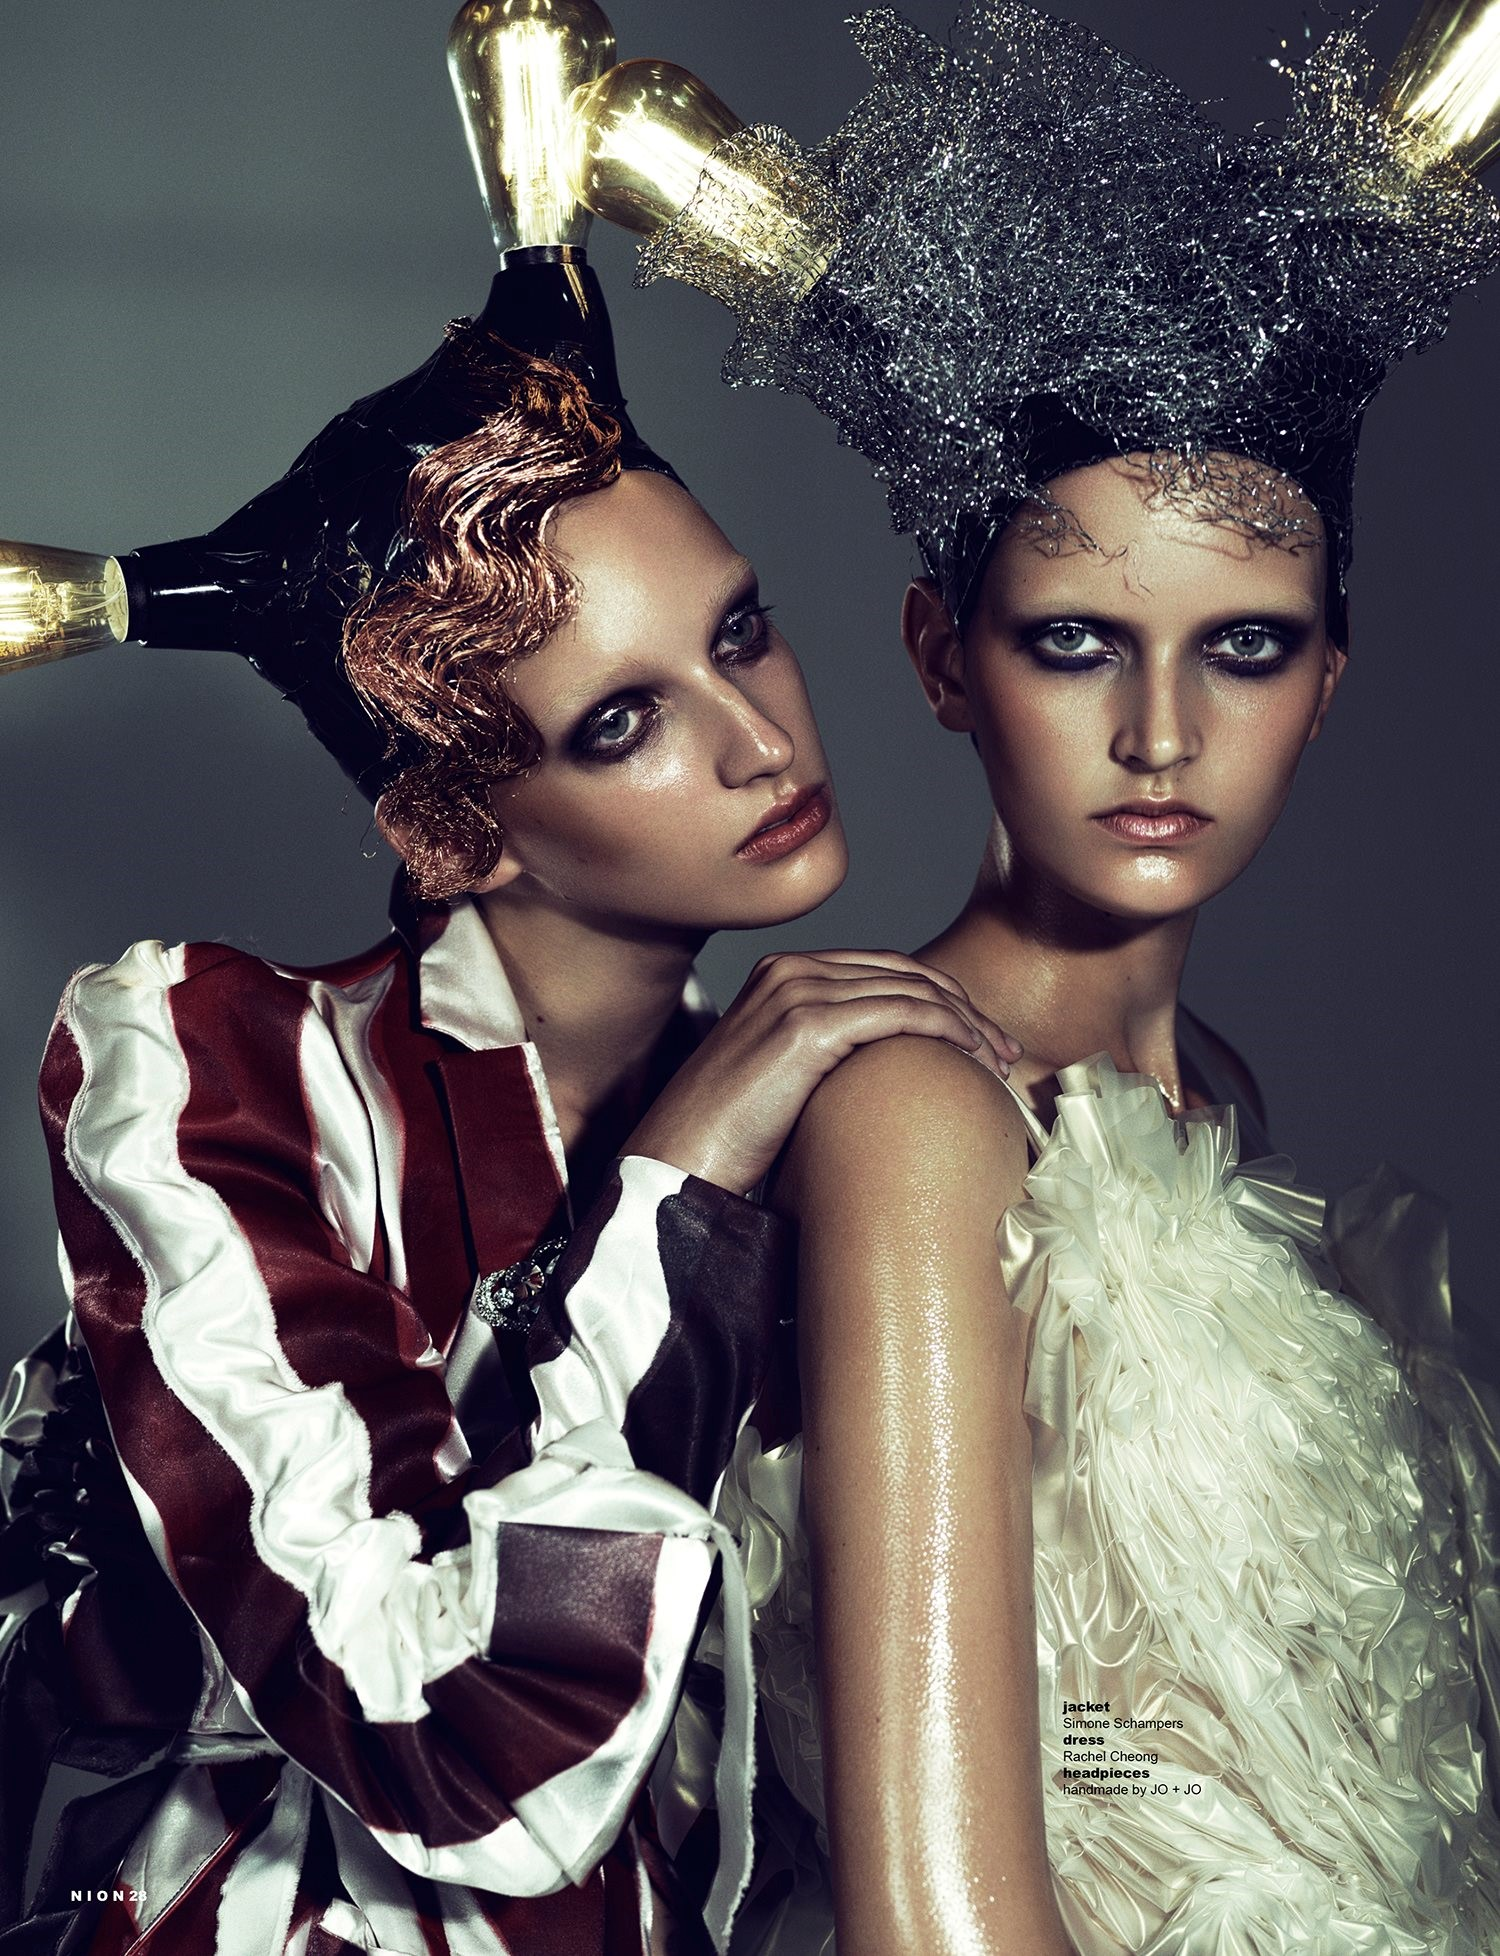 by Joeri Rouffa in the field of Hair rebresented to you by frank agency amsterdam